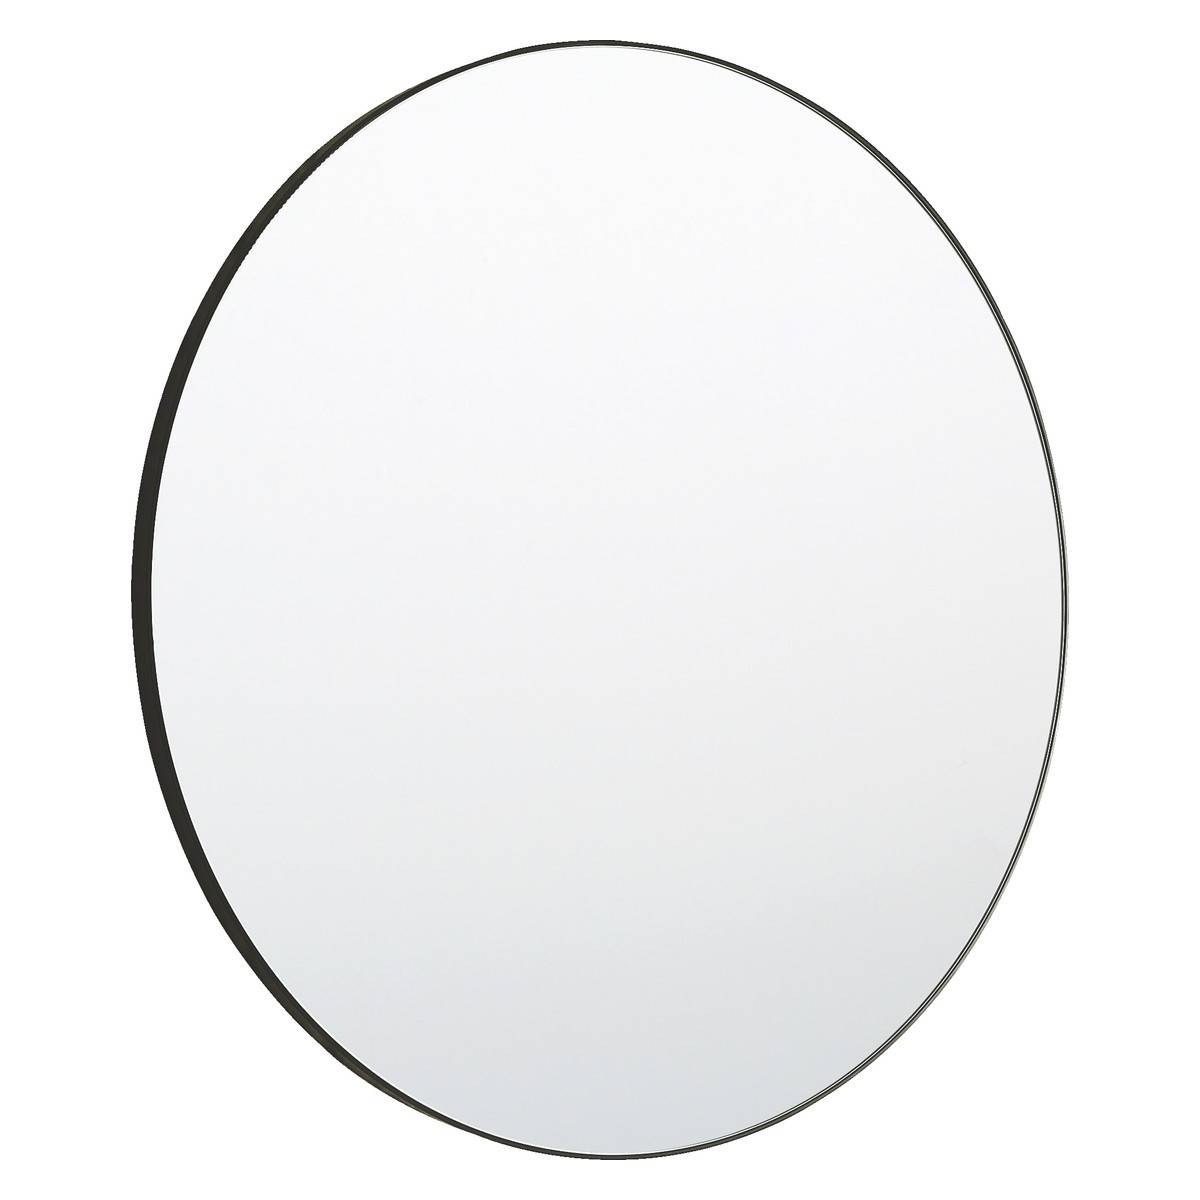 Patsy Large Round Black Wall Mirror D82cm | Buy Now At Habitat Uk Regarding Large Round Black Mirrors (View 5 of 15)